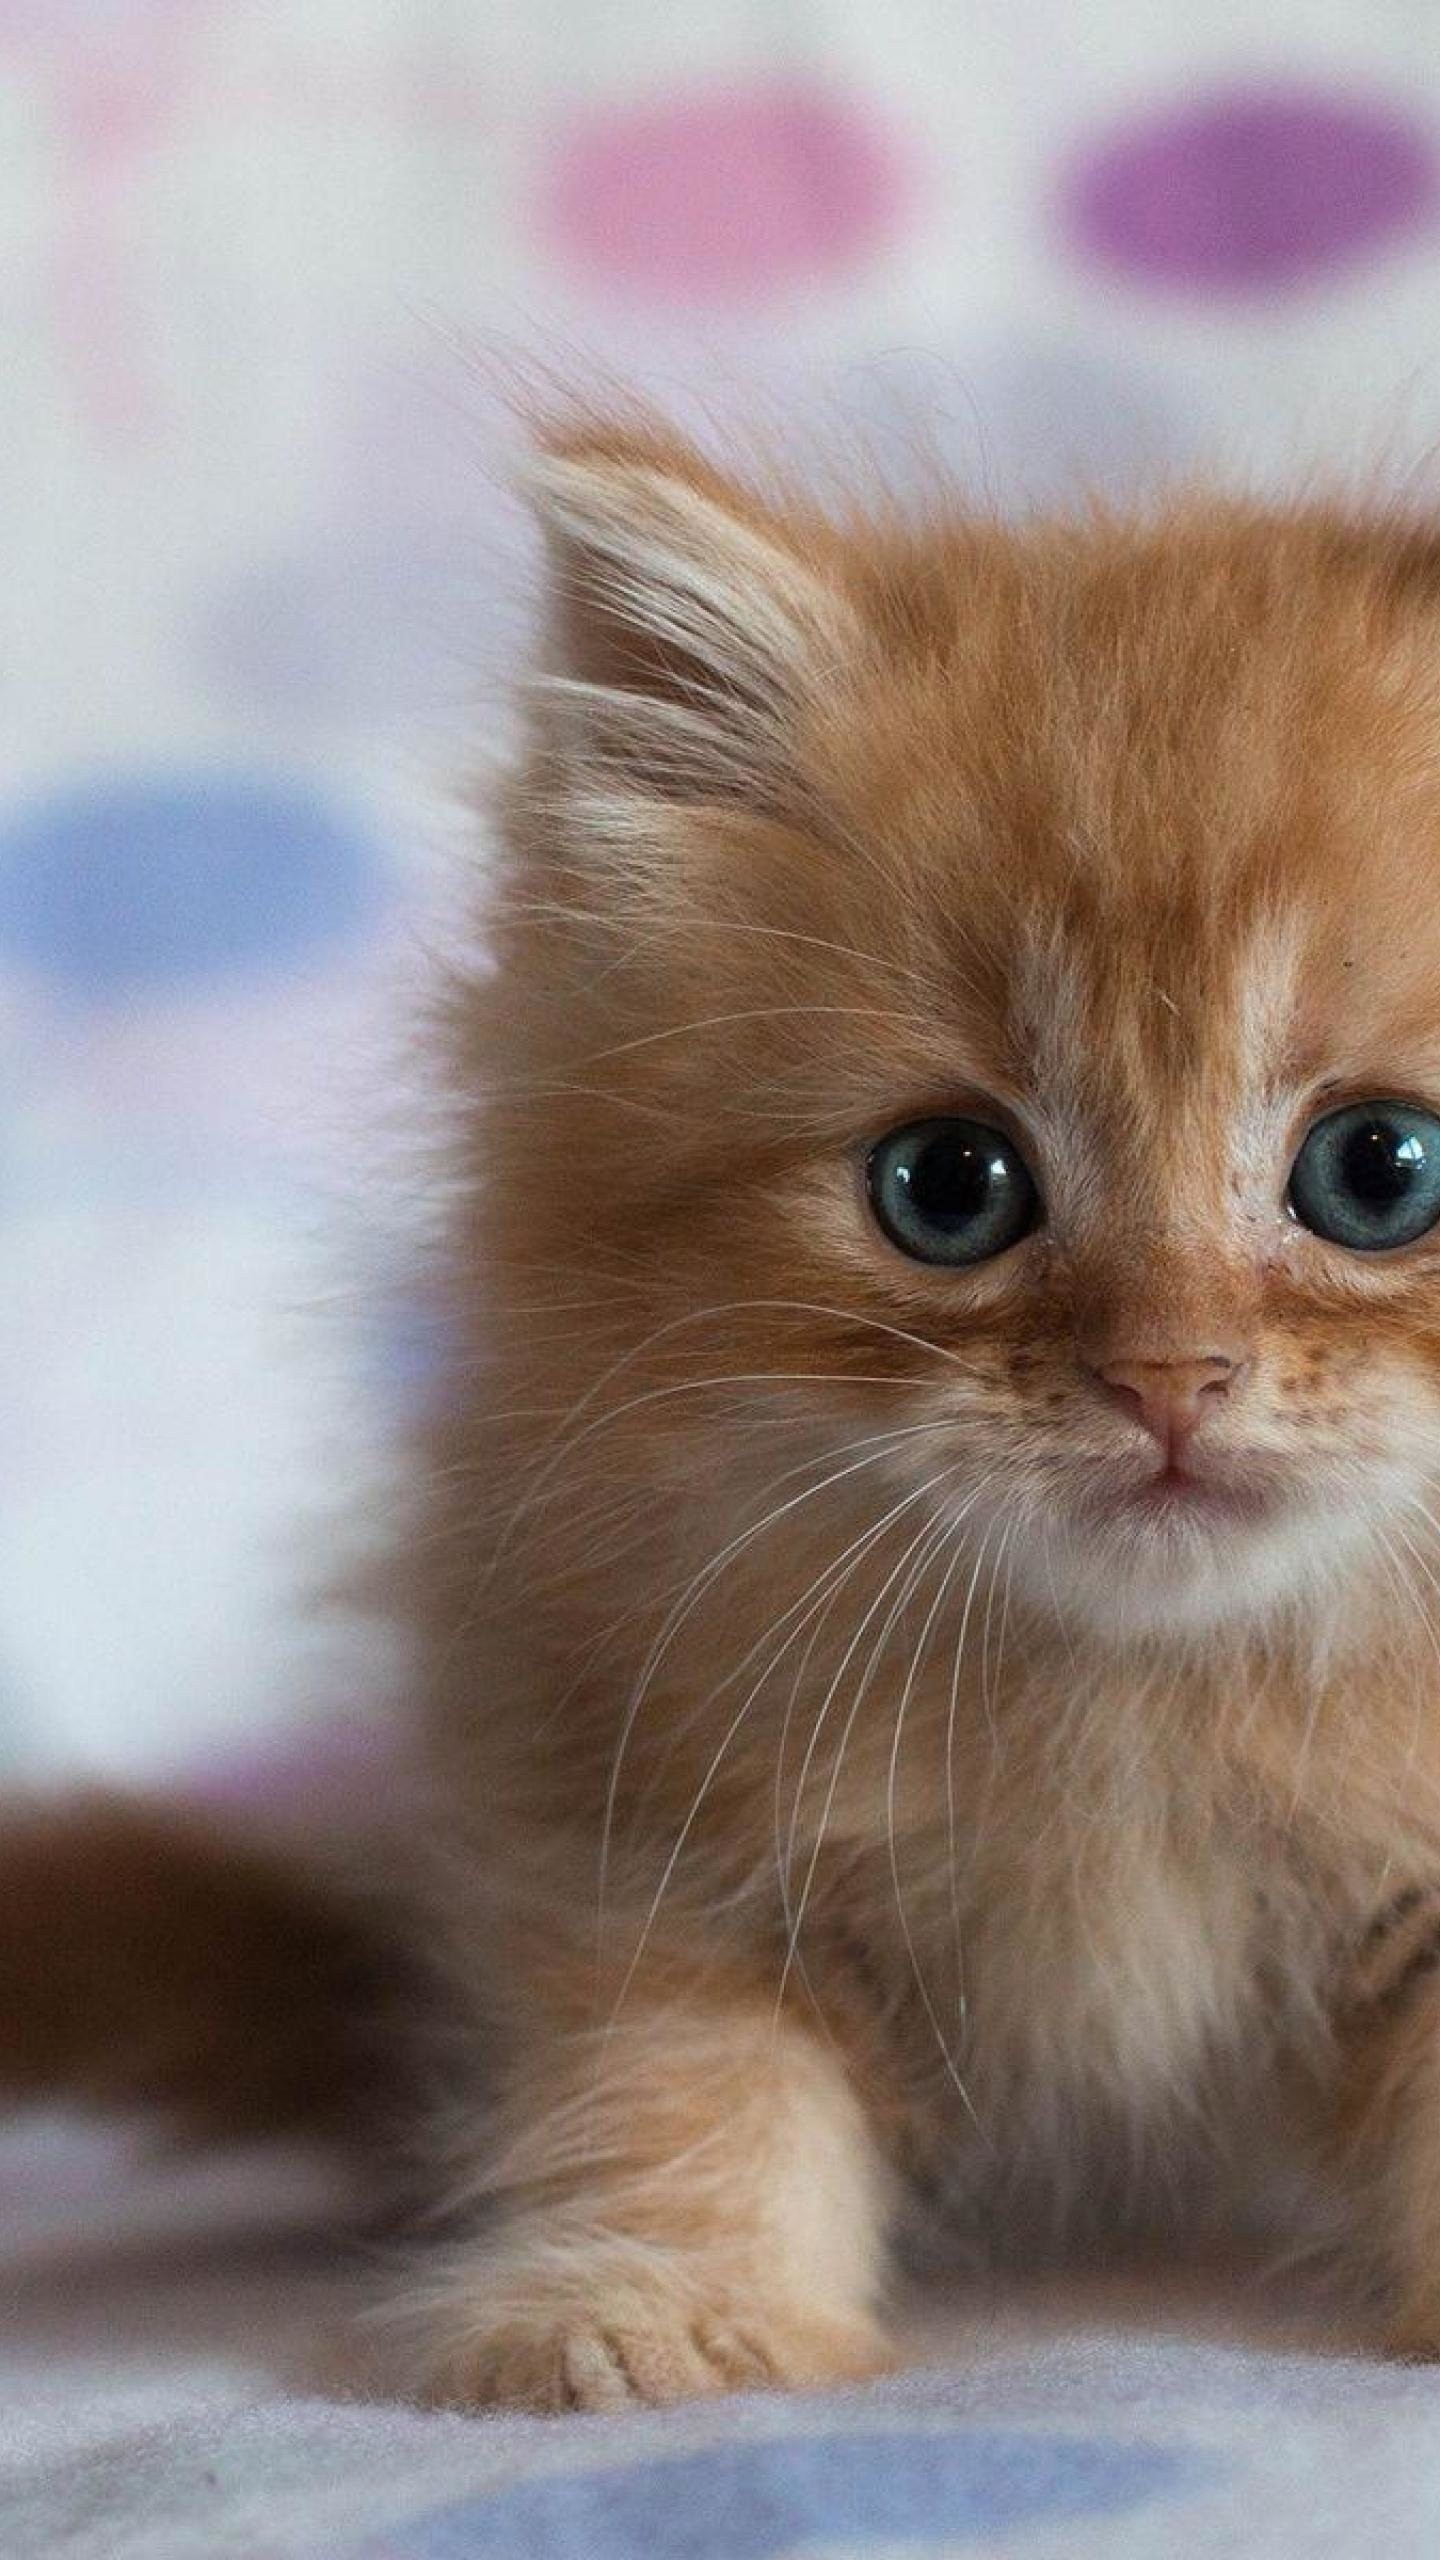 Cute Cats HD Wallpapers for Galaxy S7 | Wallpapers.Pictures